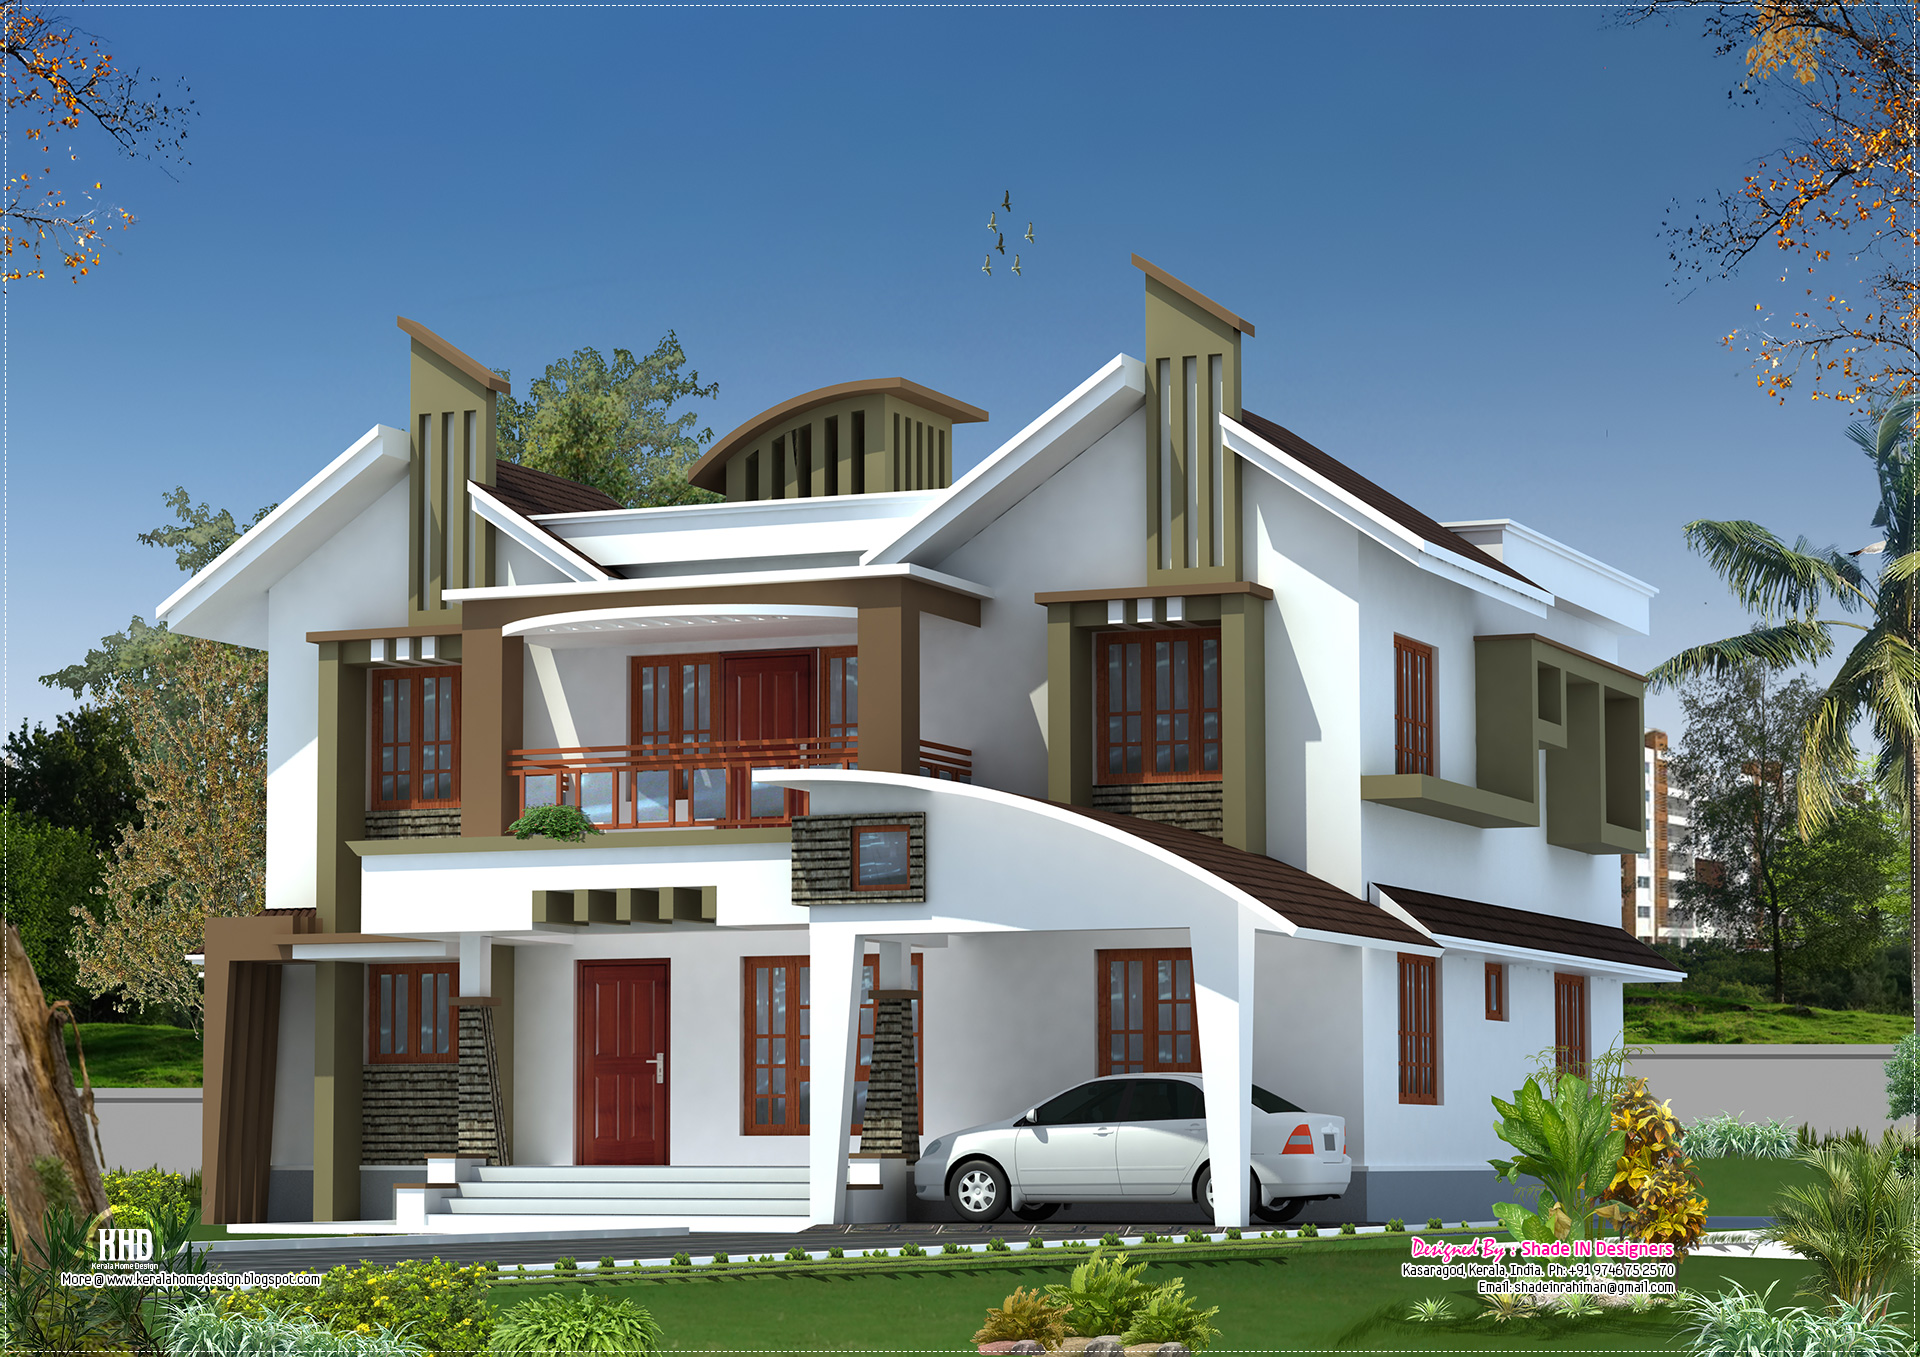 Modern house elevation from kasaragod kerala kerala Designers homes